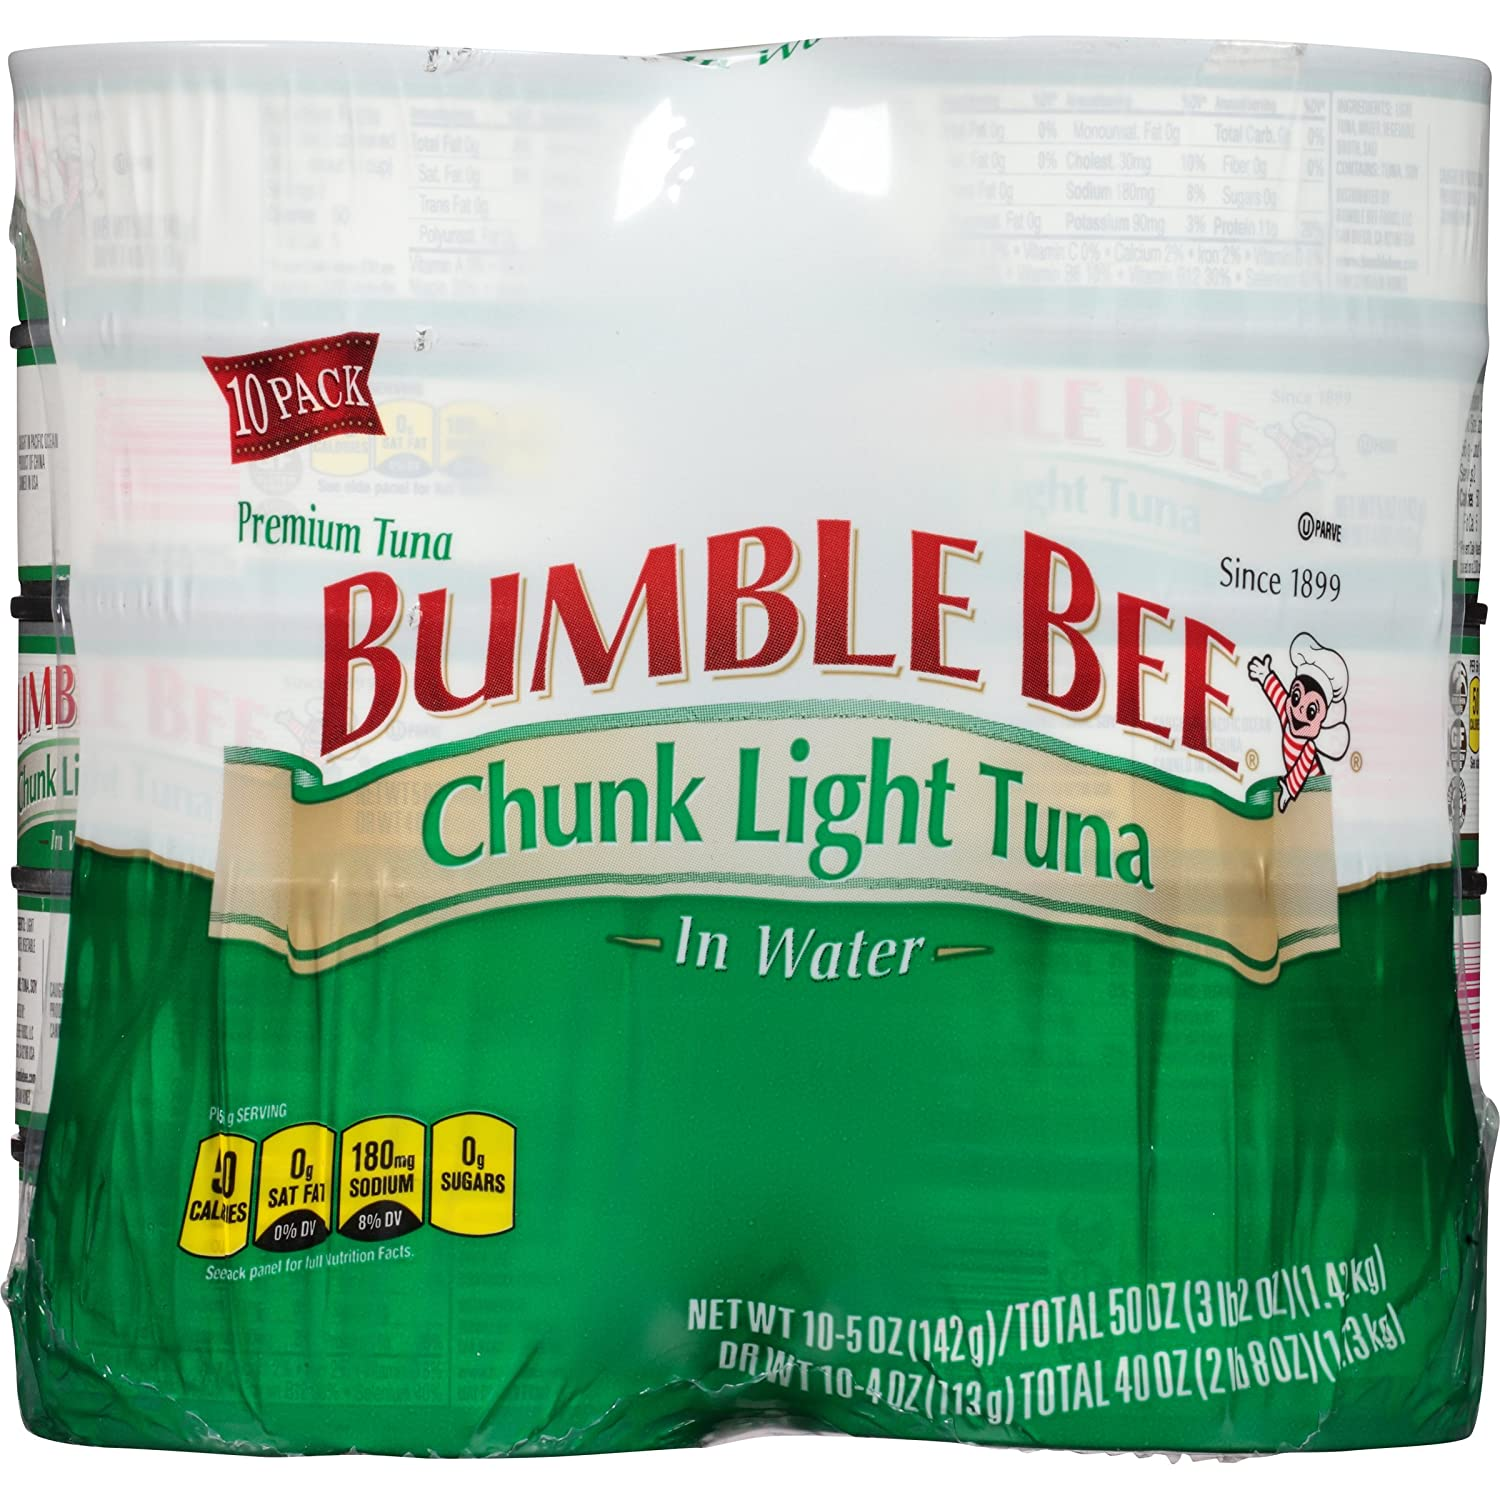 BUMBLE BEE Chunk Light Tuna in Water, Canned Tuna Fish, High Protein Food, 5 Ounce Can (Pack of 10)